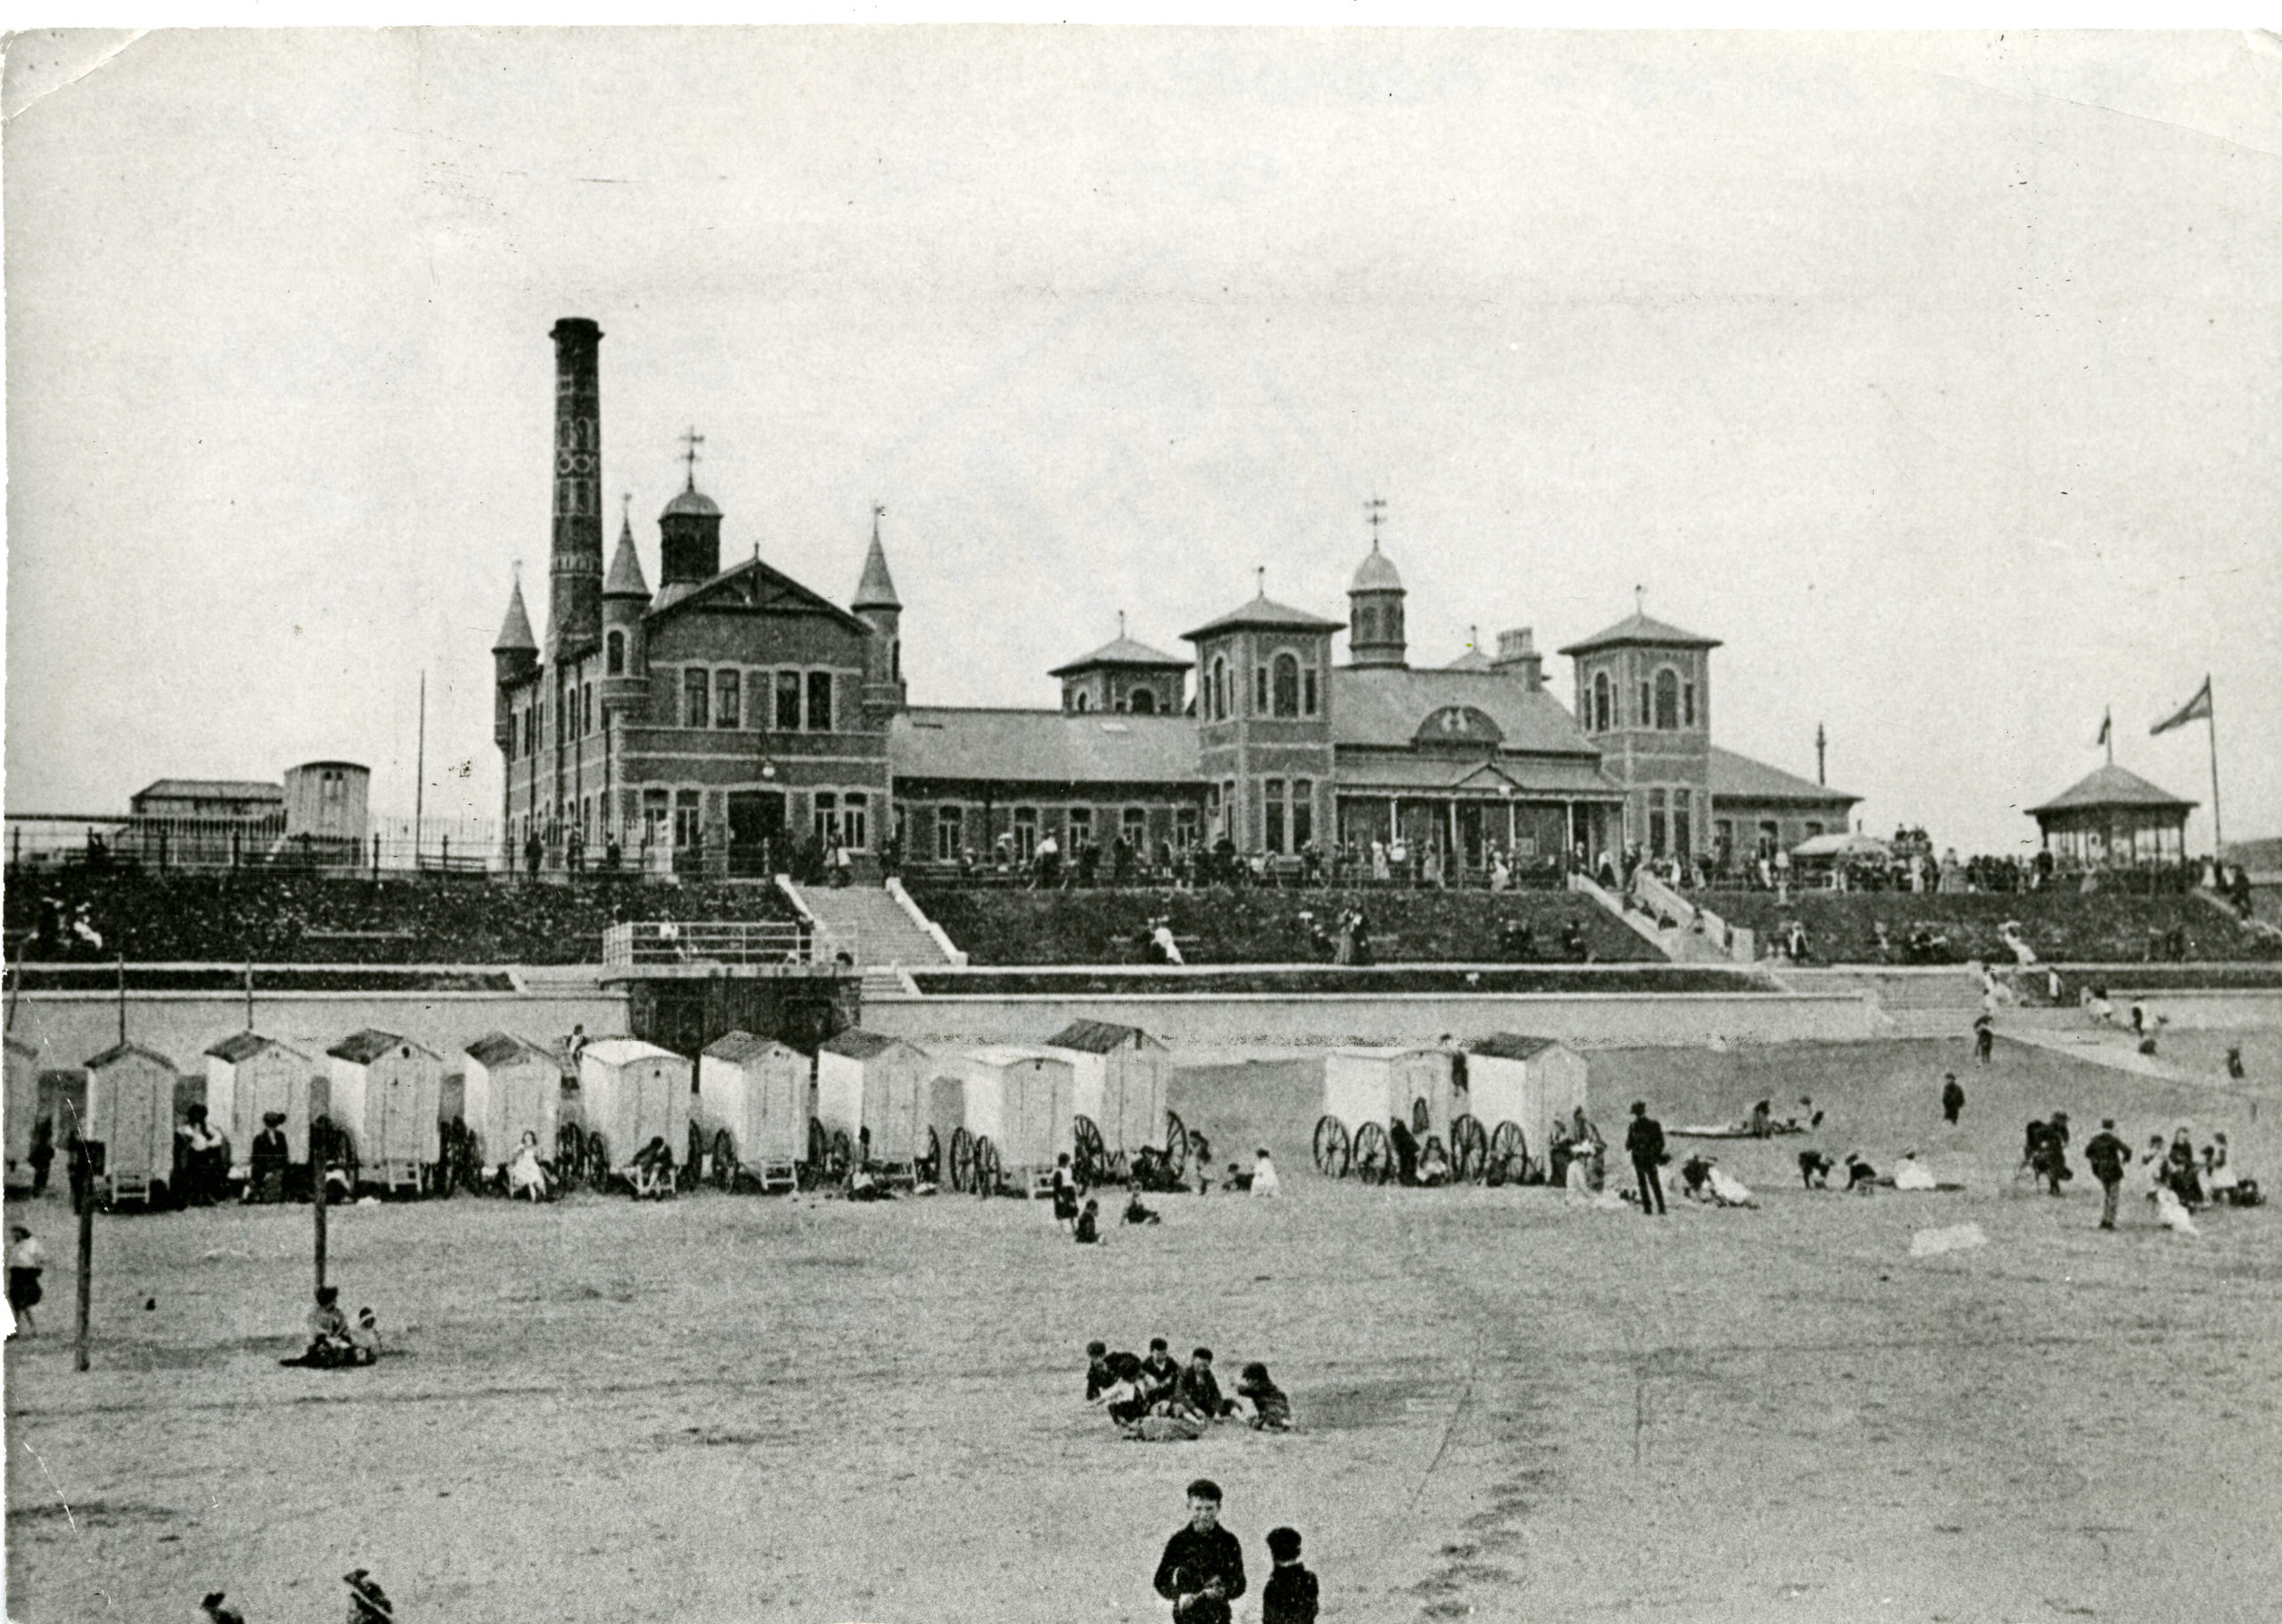 The Beach Baths at Aberdeen seafront.  Bathing huts can be seen on the beach.